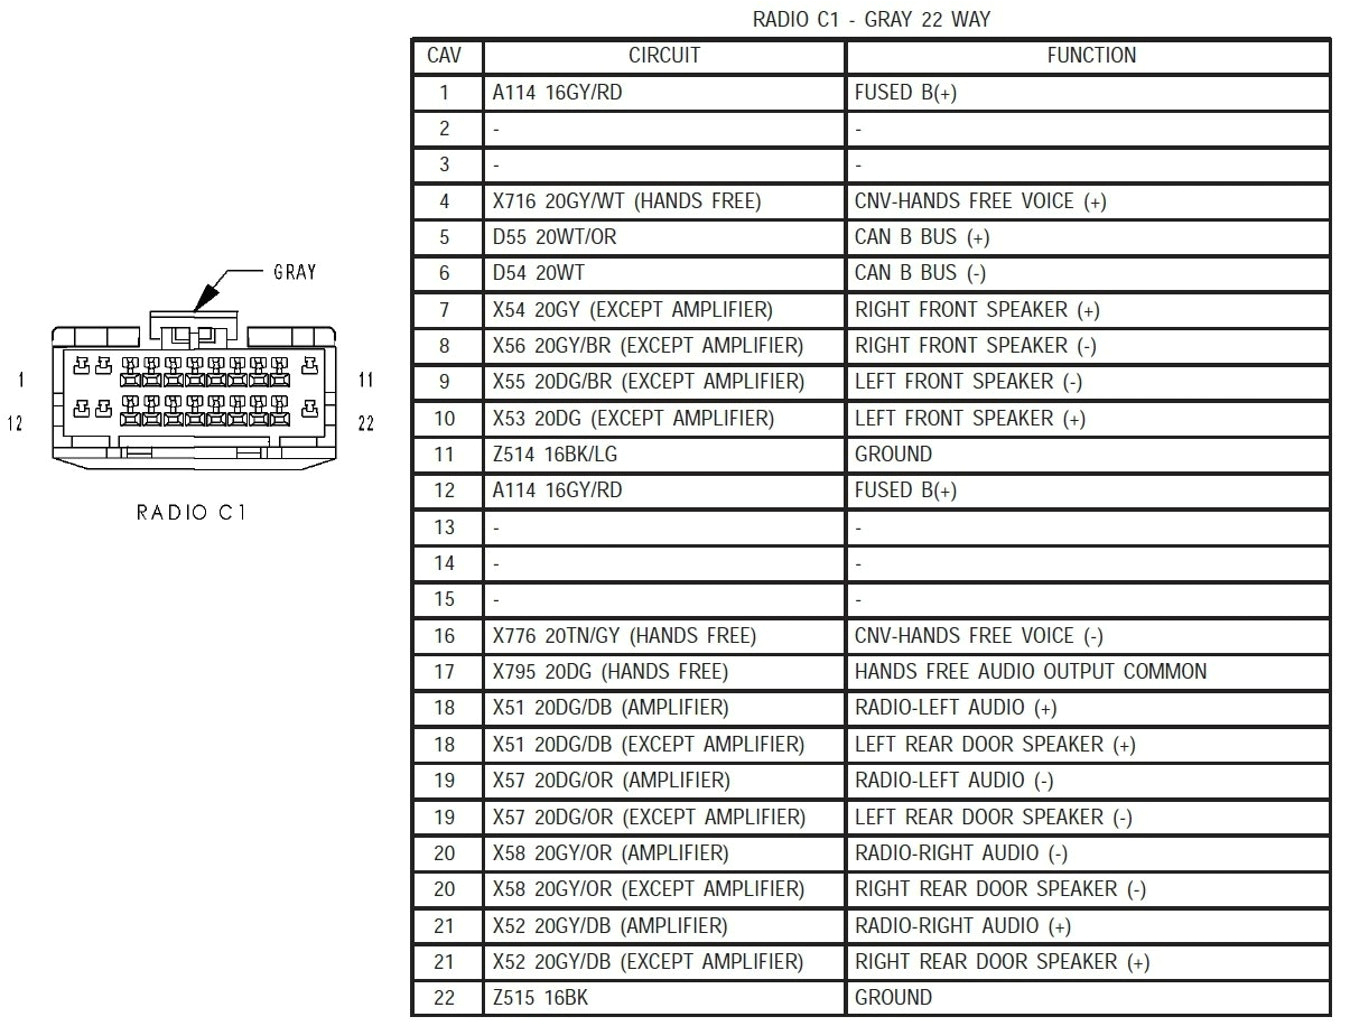 kvt 815 wiring diagram wiring diagrams konsultkvt 815 wiring diagram wiring diagram new kvt 815 wiring